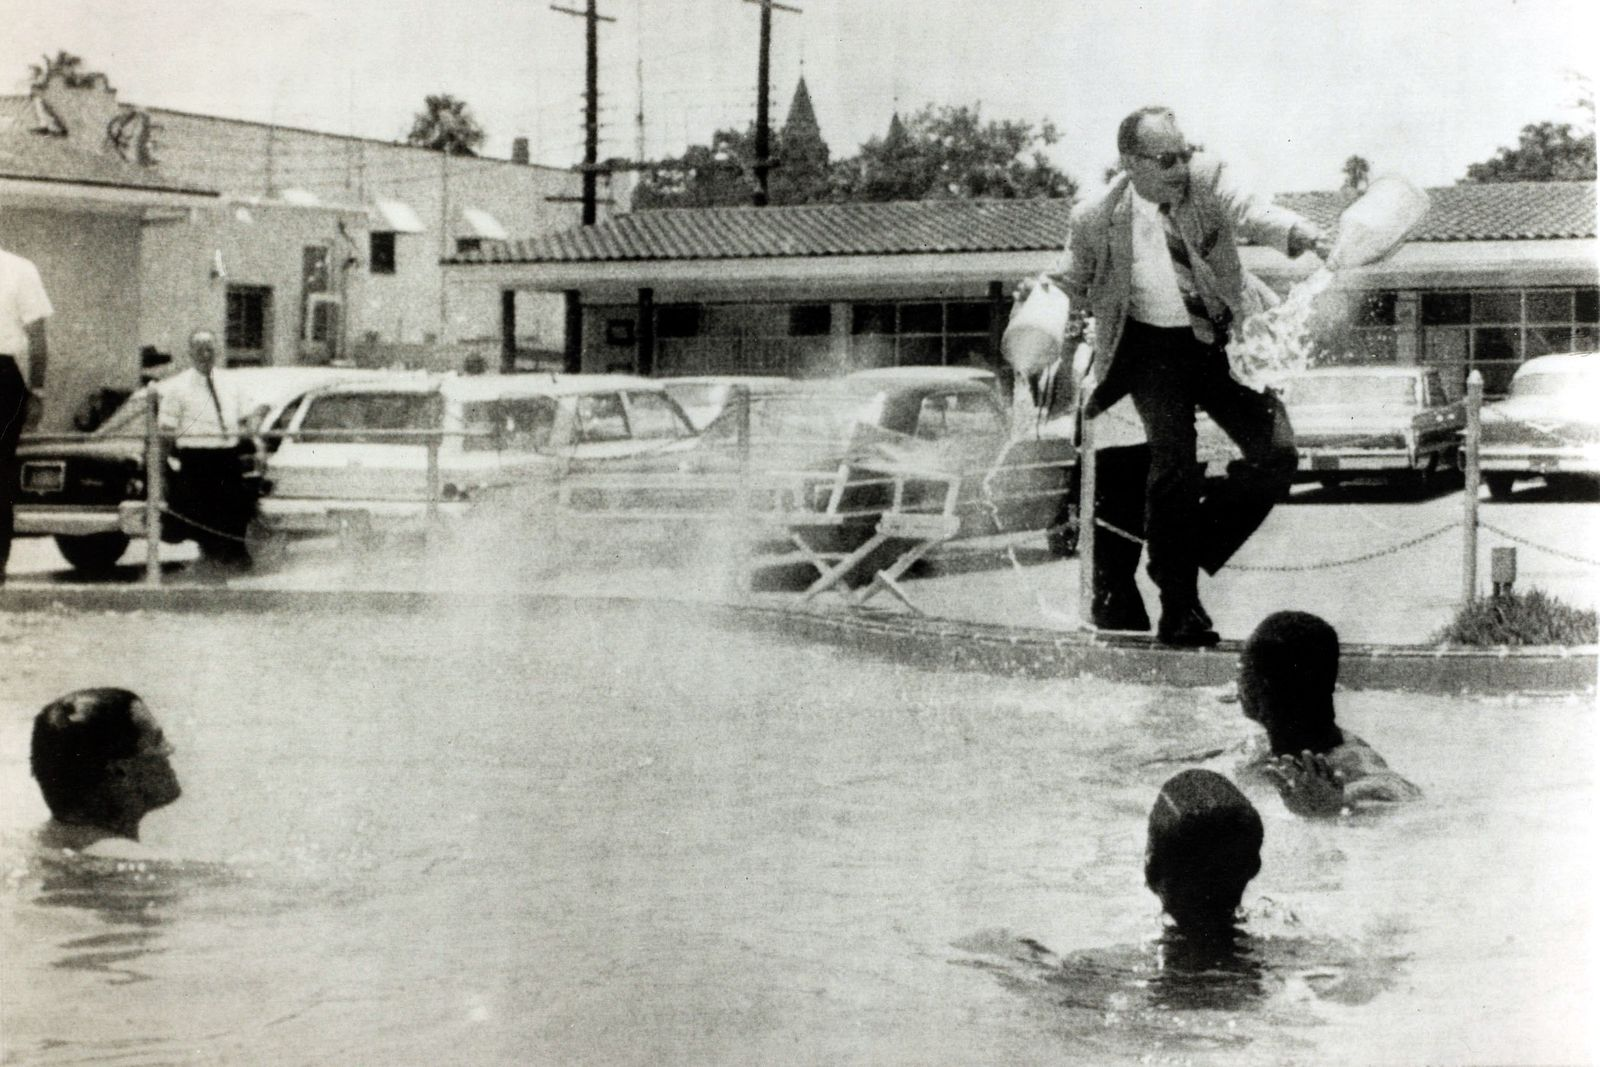 """Racial Discrimination Segregation, USA. pic: 18th June 1964. St.Augustine, Florida. Demonstrators black and white stage a """"jump-in"""" at a motel pool, open only whites, as the angry motel manager dumps the contents of two containers marked """"muriatic acid"""""""